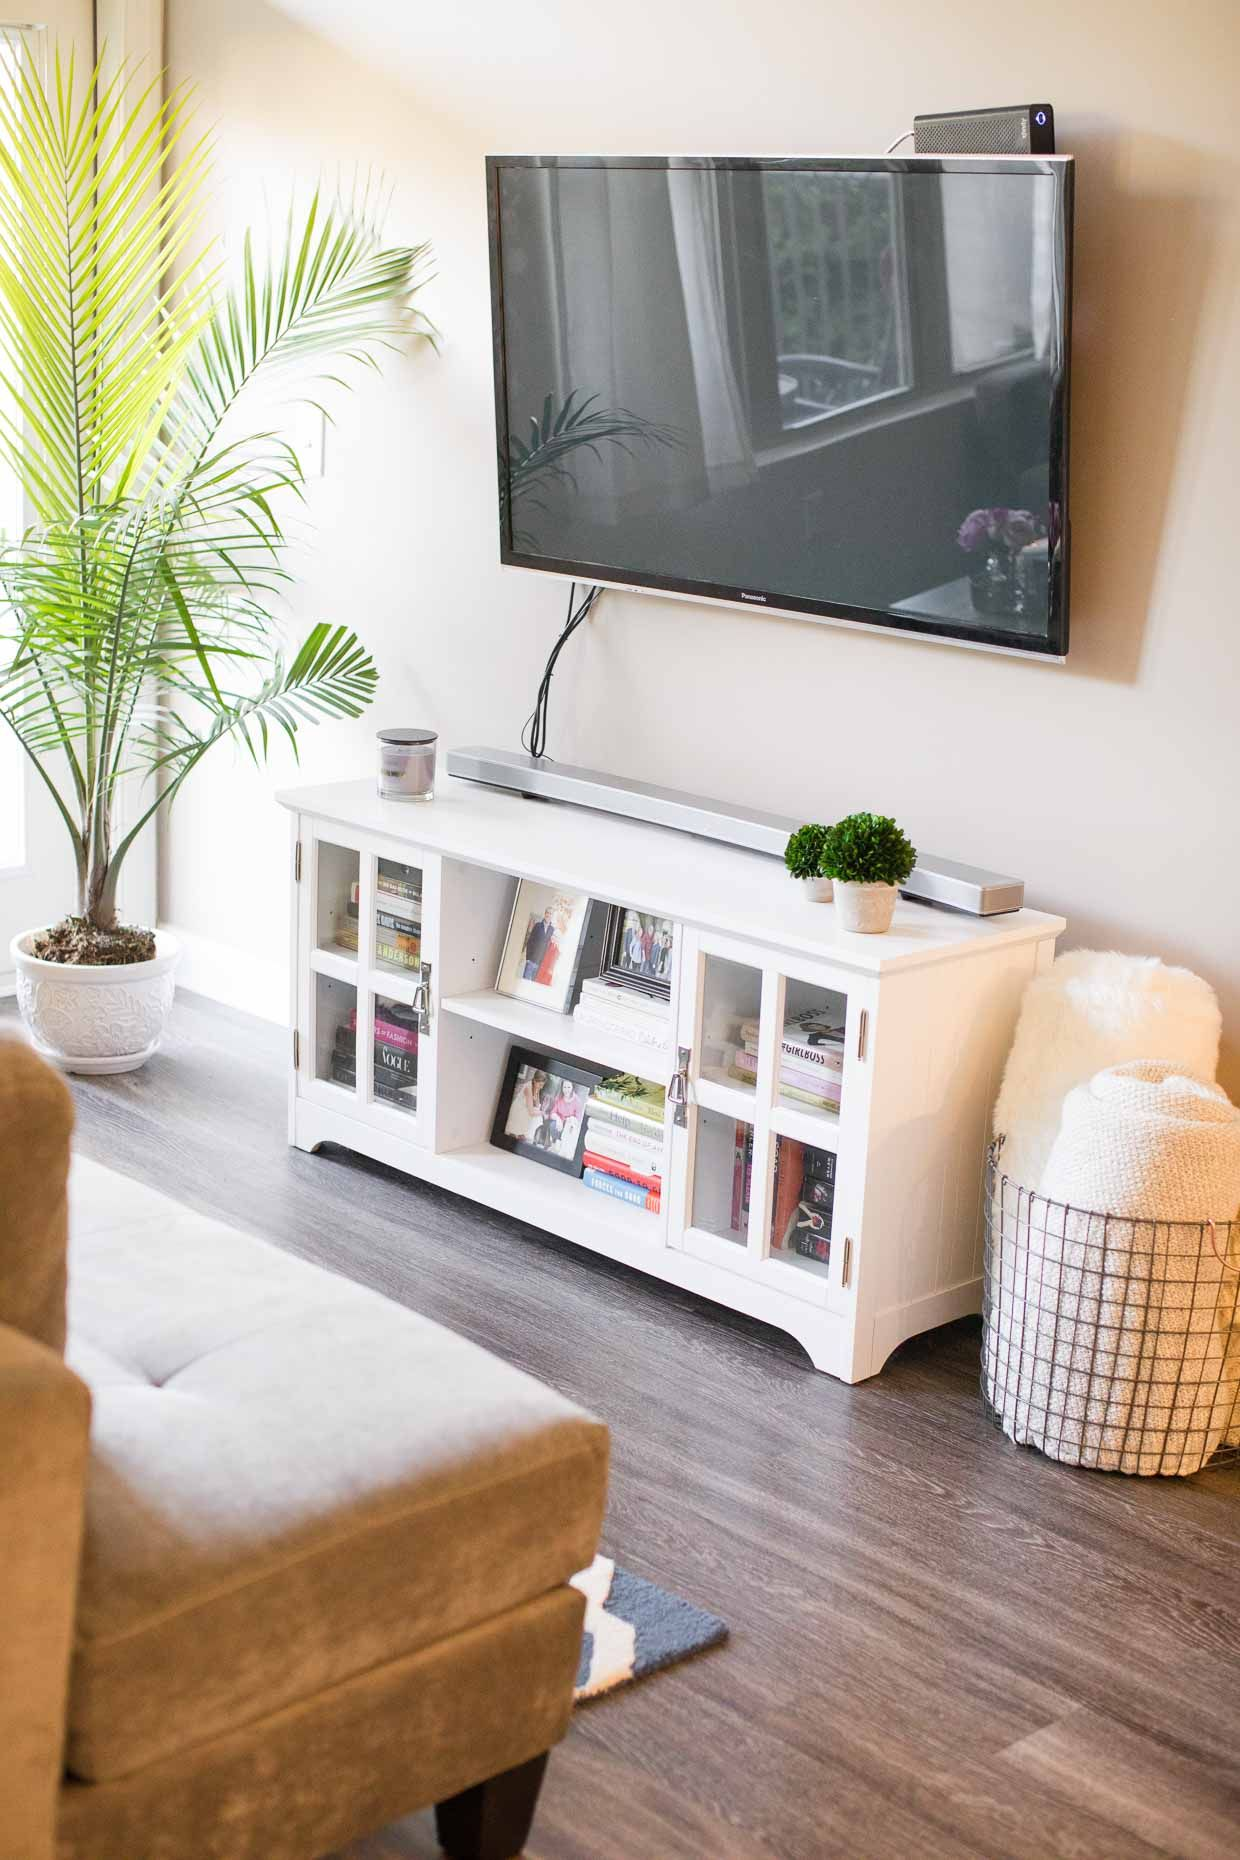 Atlanta apartment tour affordable home decor inspiration media center and that plant in corner